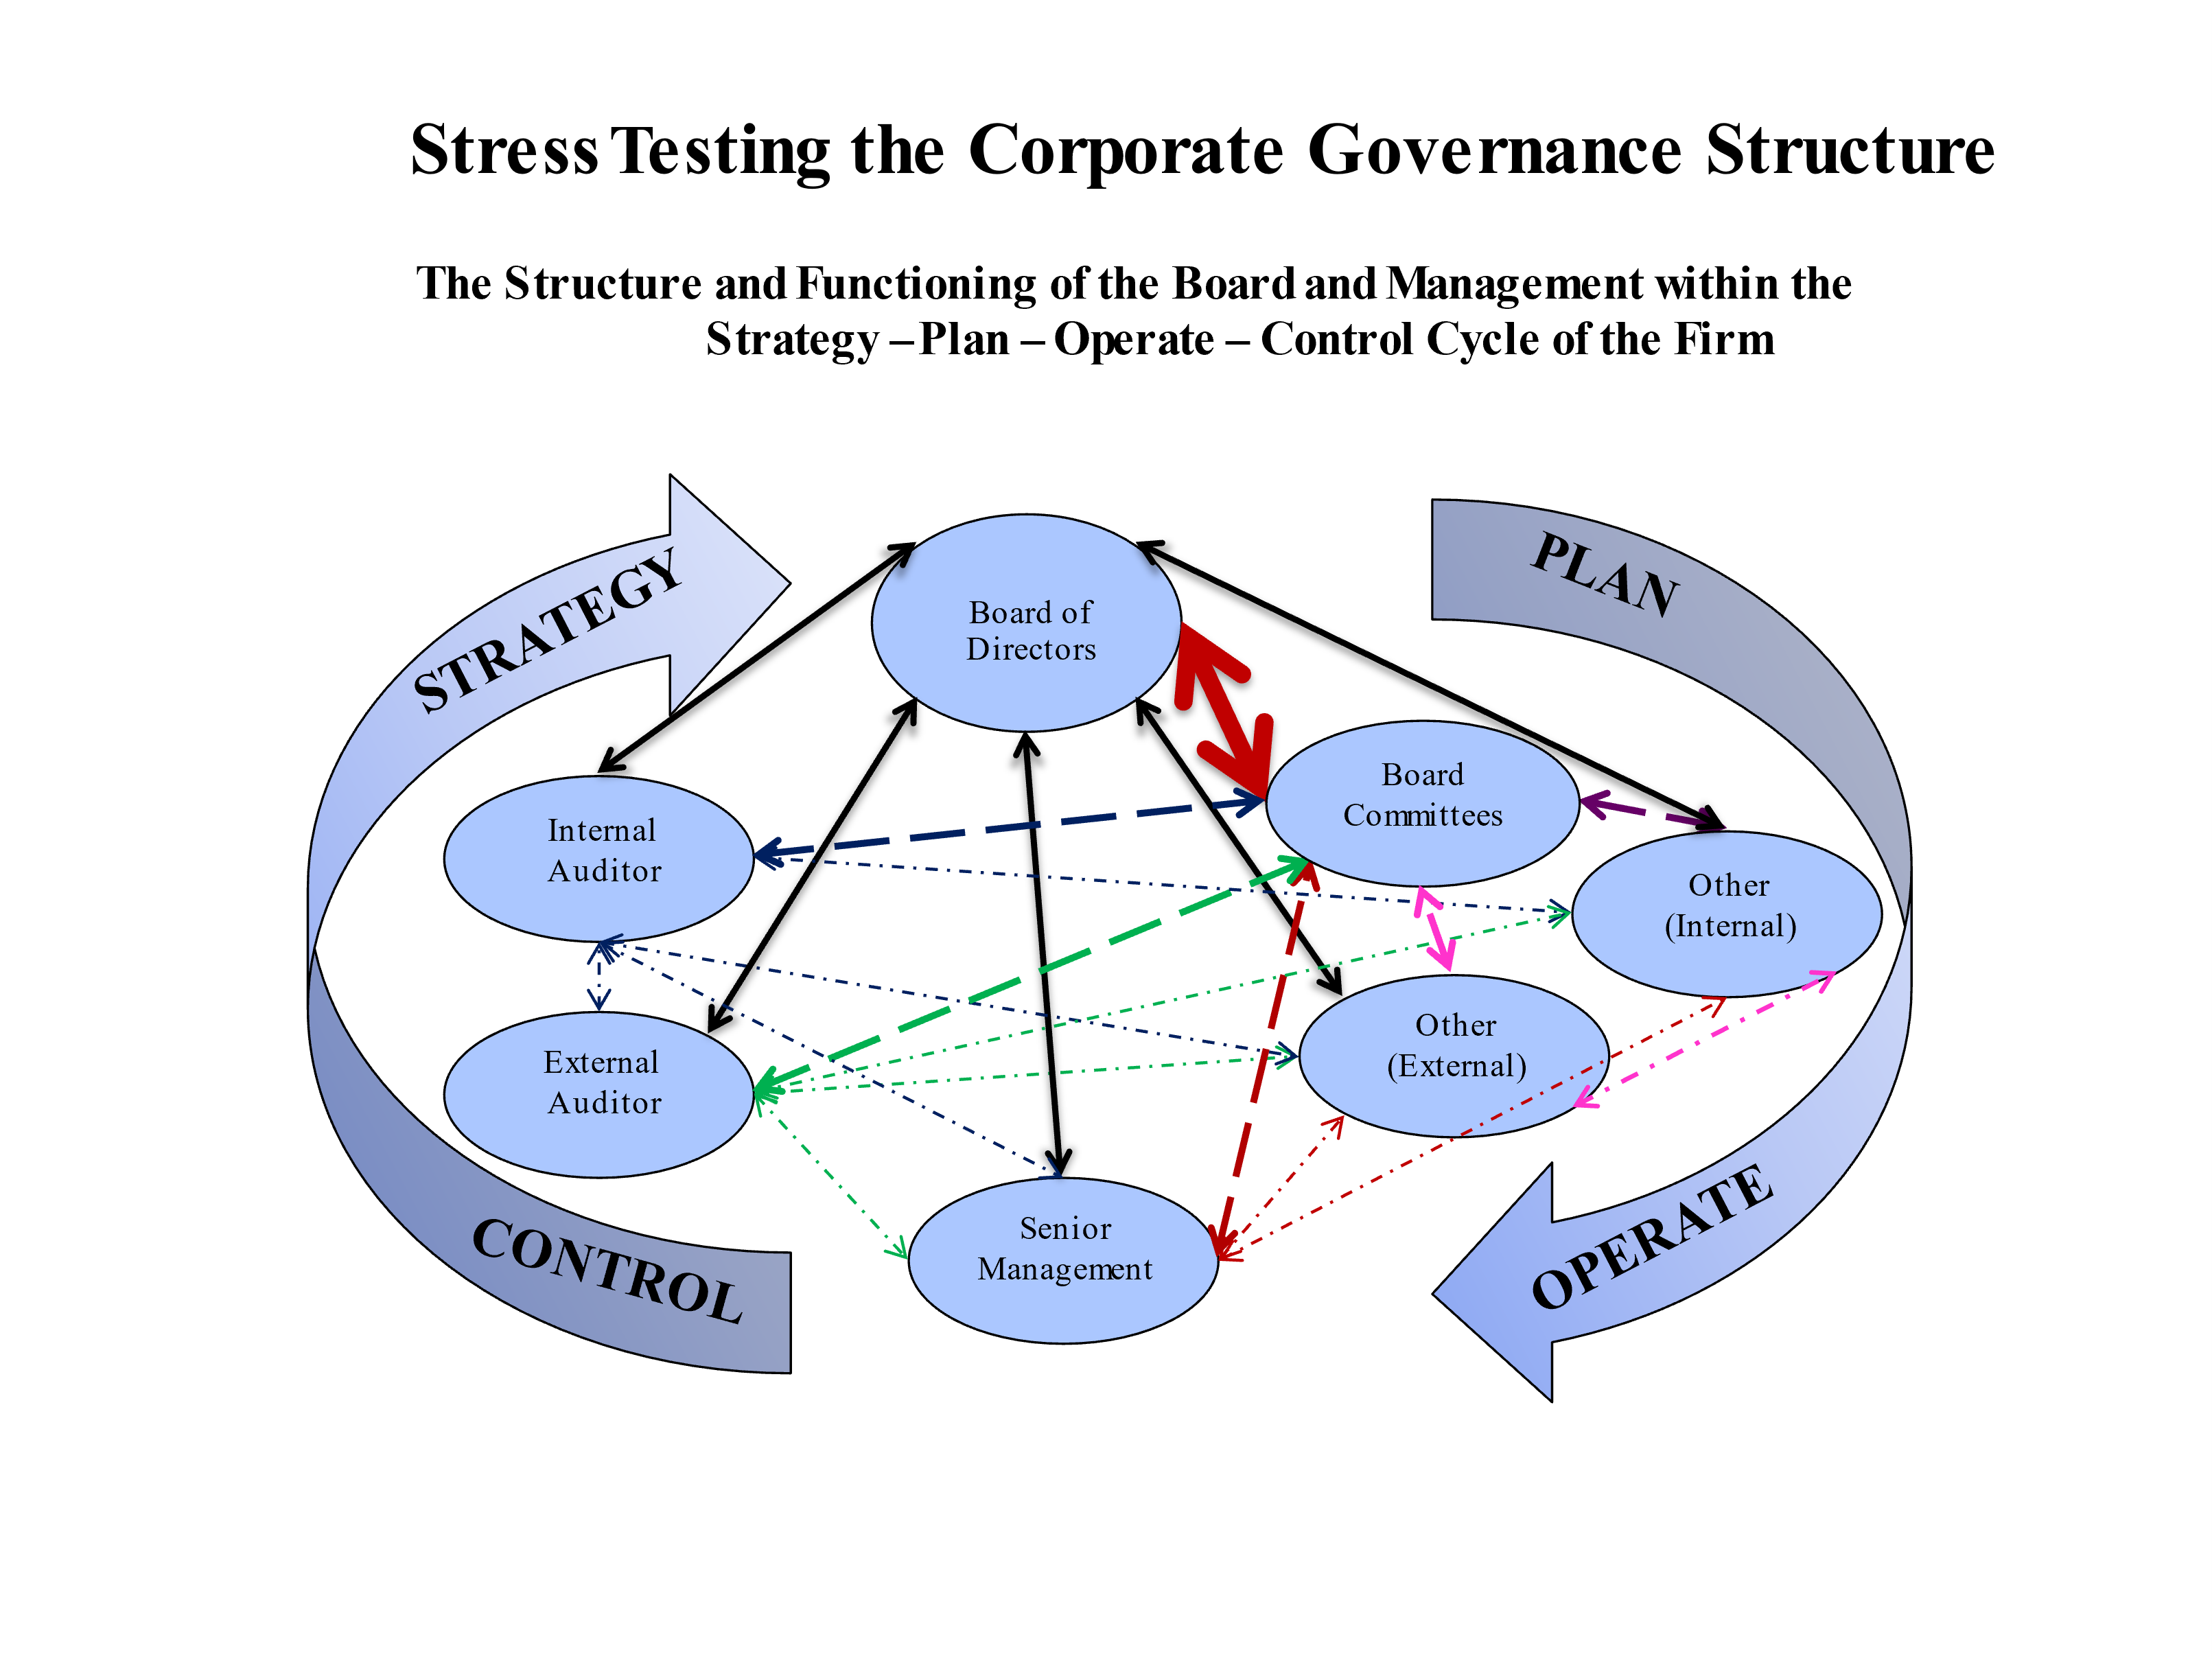 """Diagram titled """"Stress Testing the Corporate Governance Structure."""" The structure and functioning of the board and management within the Strategy-Plan-Operate-Control Cycle of the firm. """"Plan"""" and """"Operate"""" arrows go from the board of directors to senior management, while """"control"""" and """"strategy"""" arrows go from senior management to the board of directors. Smaller arrows go to other entities, including board committees and auditors."""